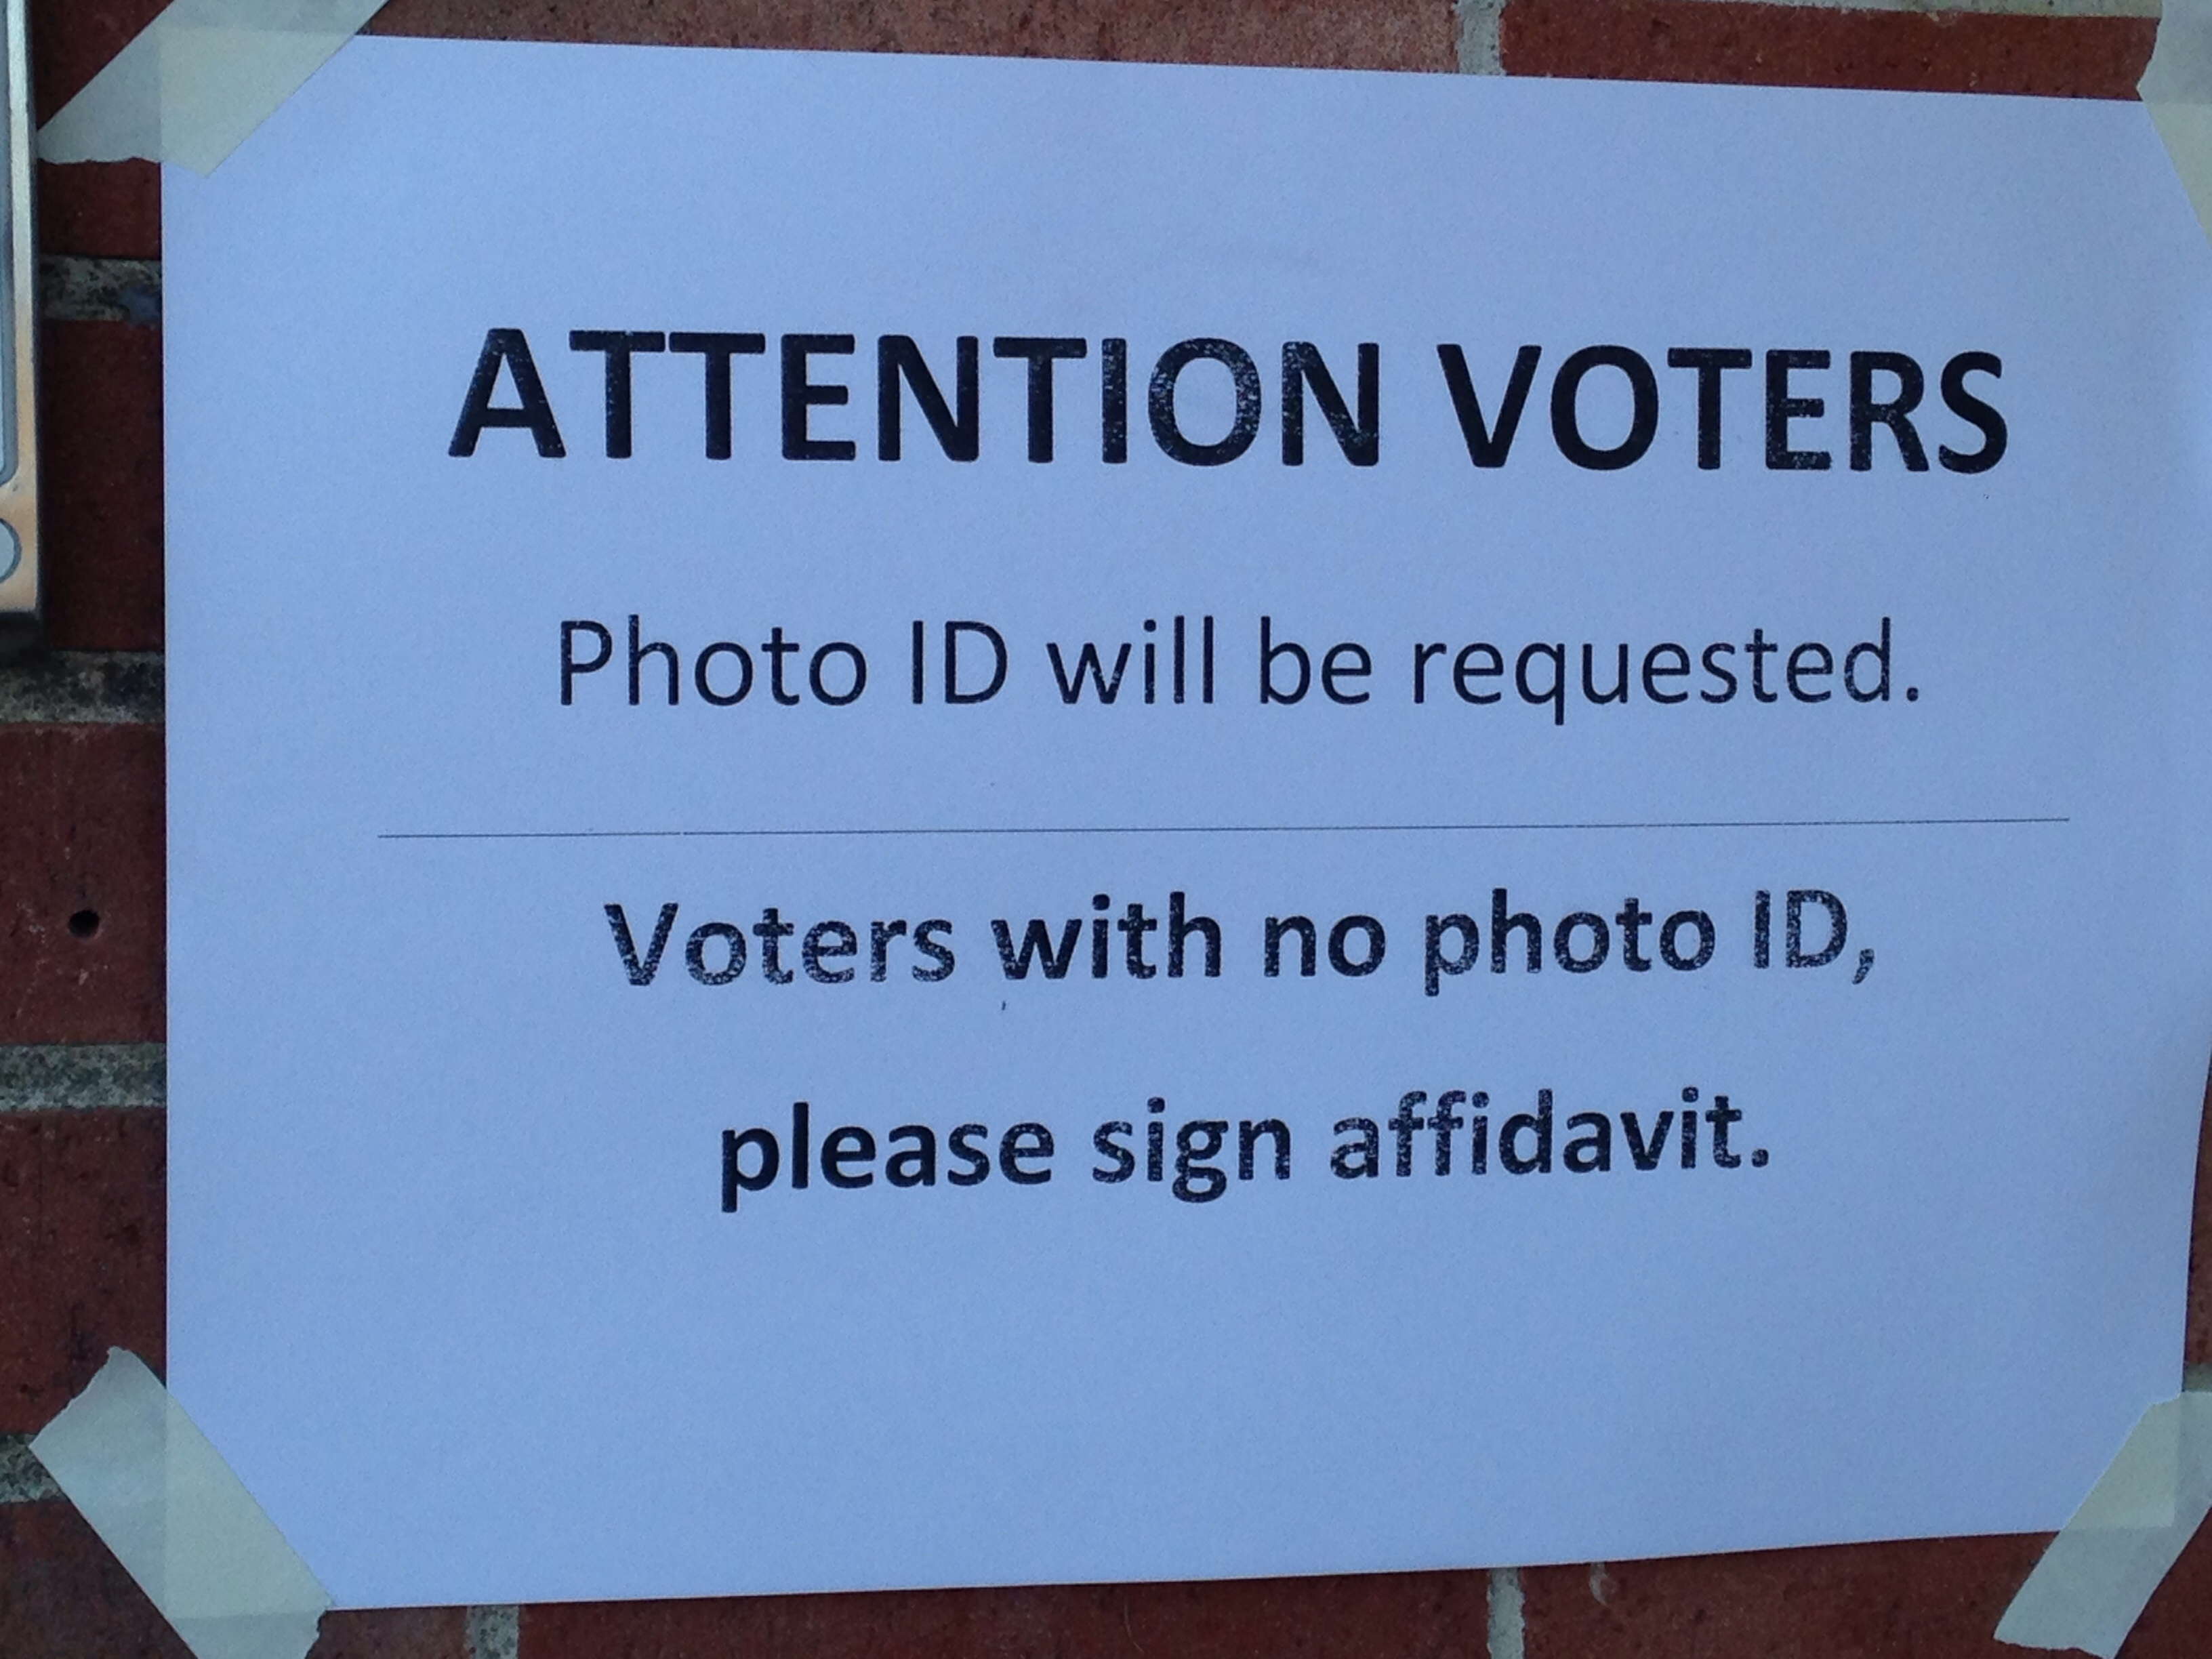 Voter ID required - New Hampshire